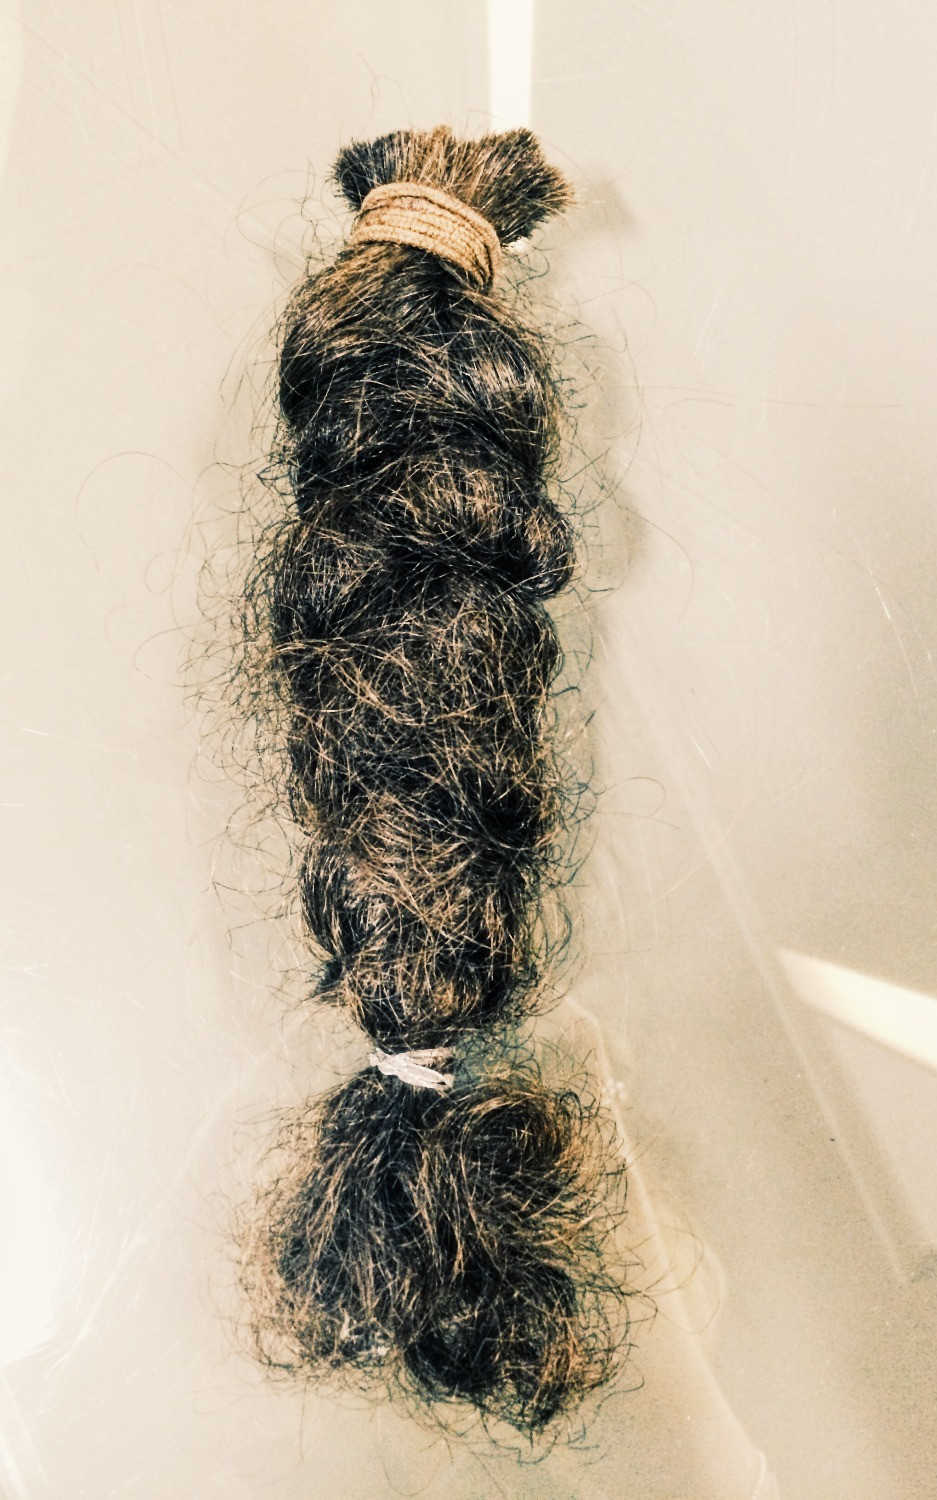 The braid to be sent to The Little Princess Trust